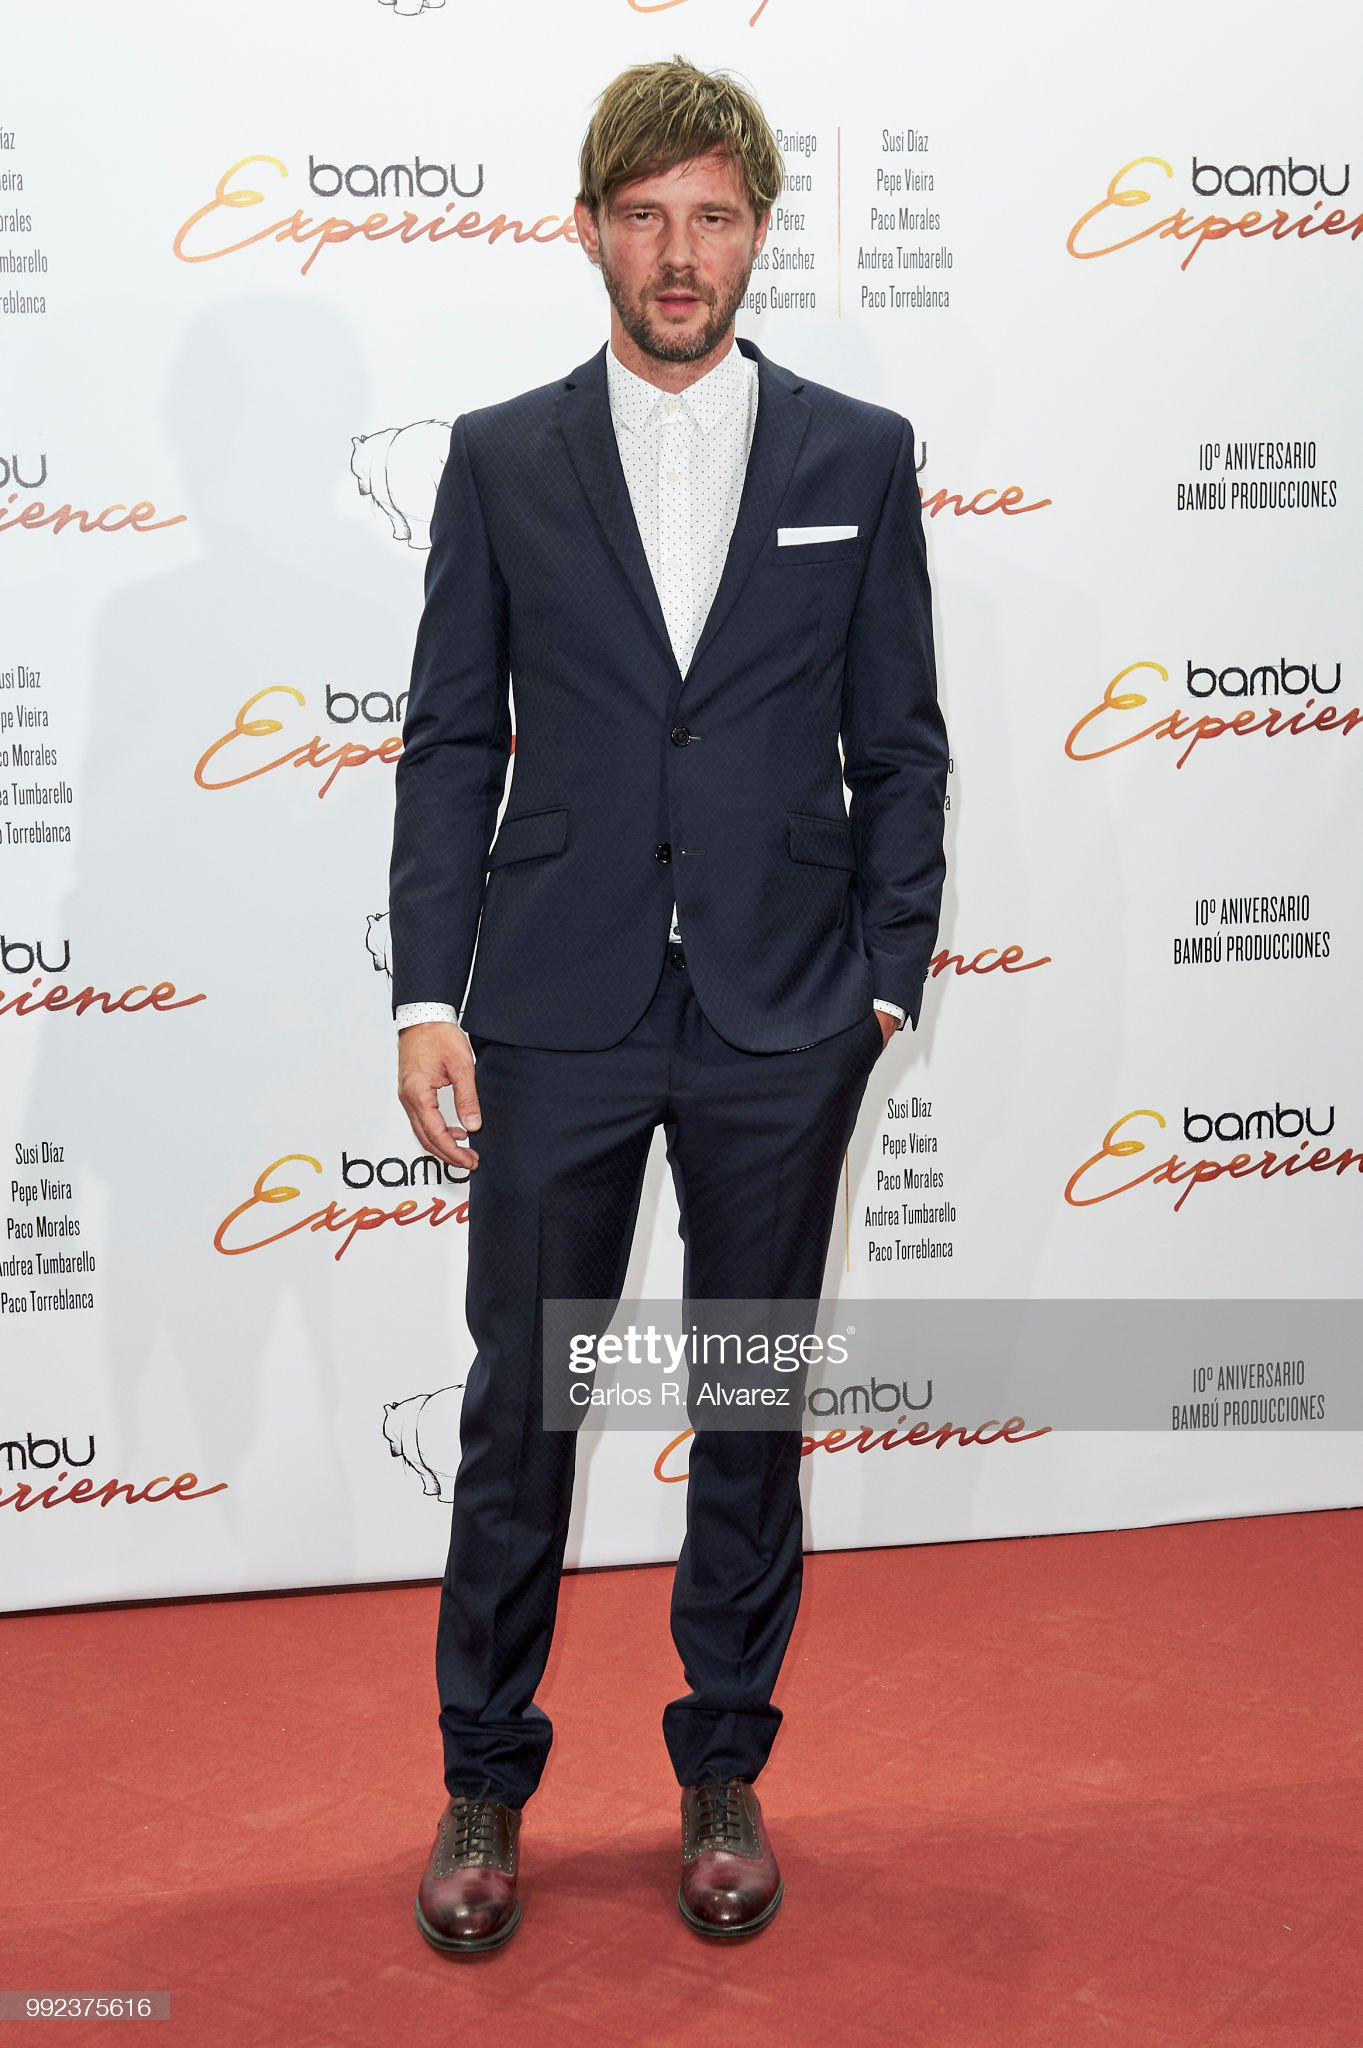 ¿Cuánto mide Eloy Azorín? - Altura Spanish-actor-eloy-azorin-attends-the-bambu-10th-anniversary-party-at-picture-id992375616?s=2048x2048